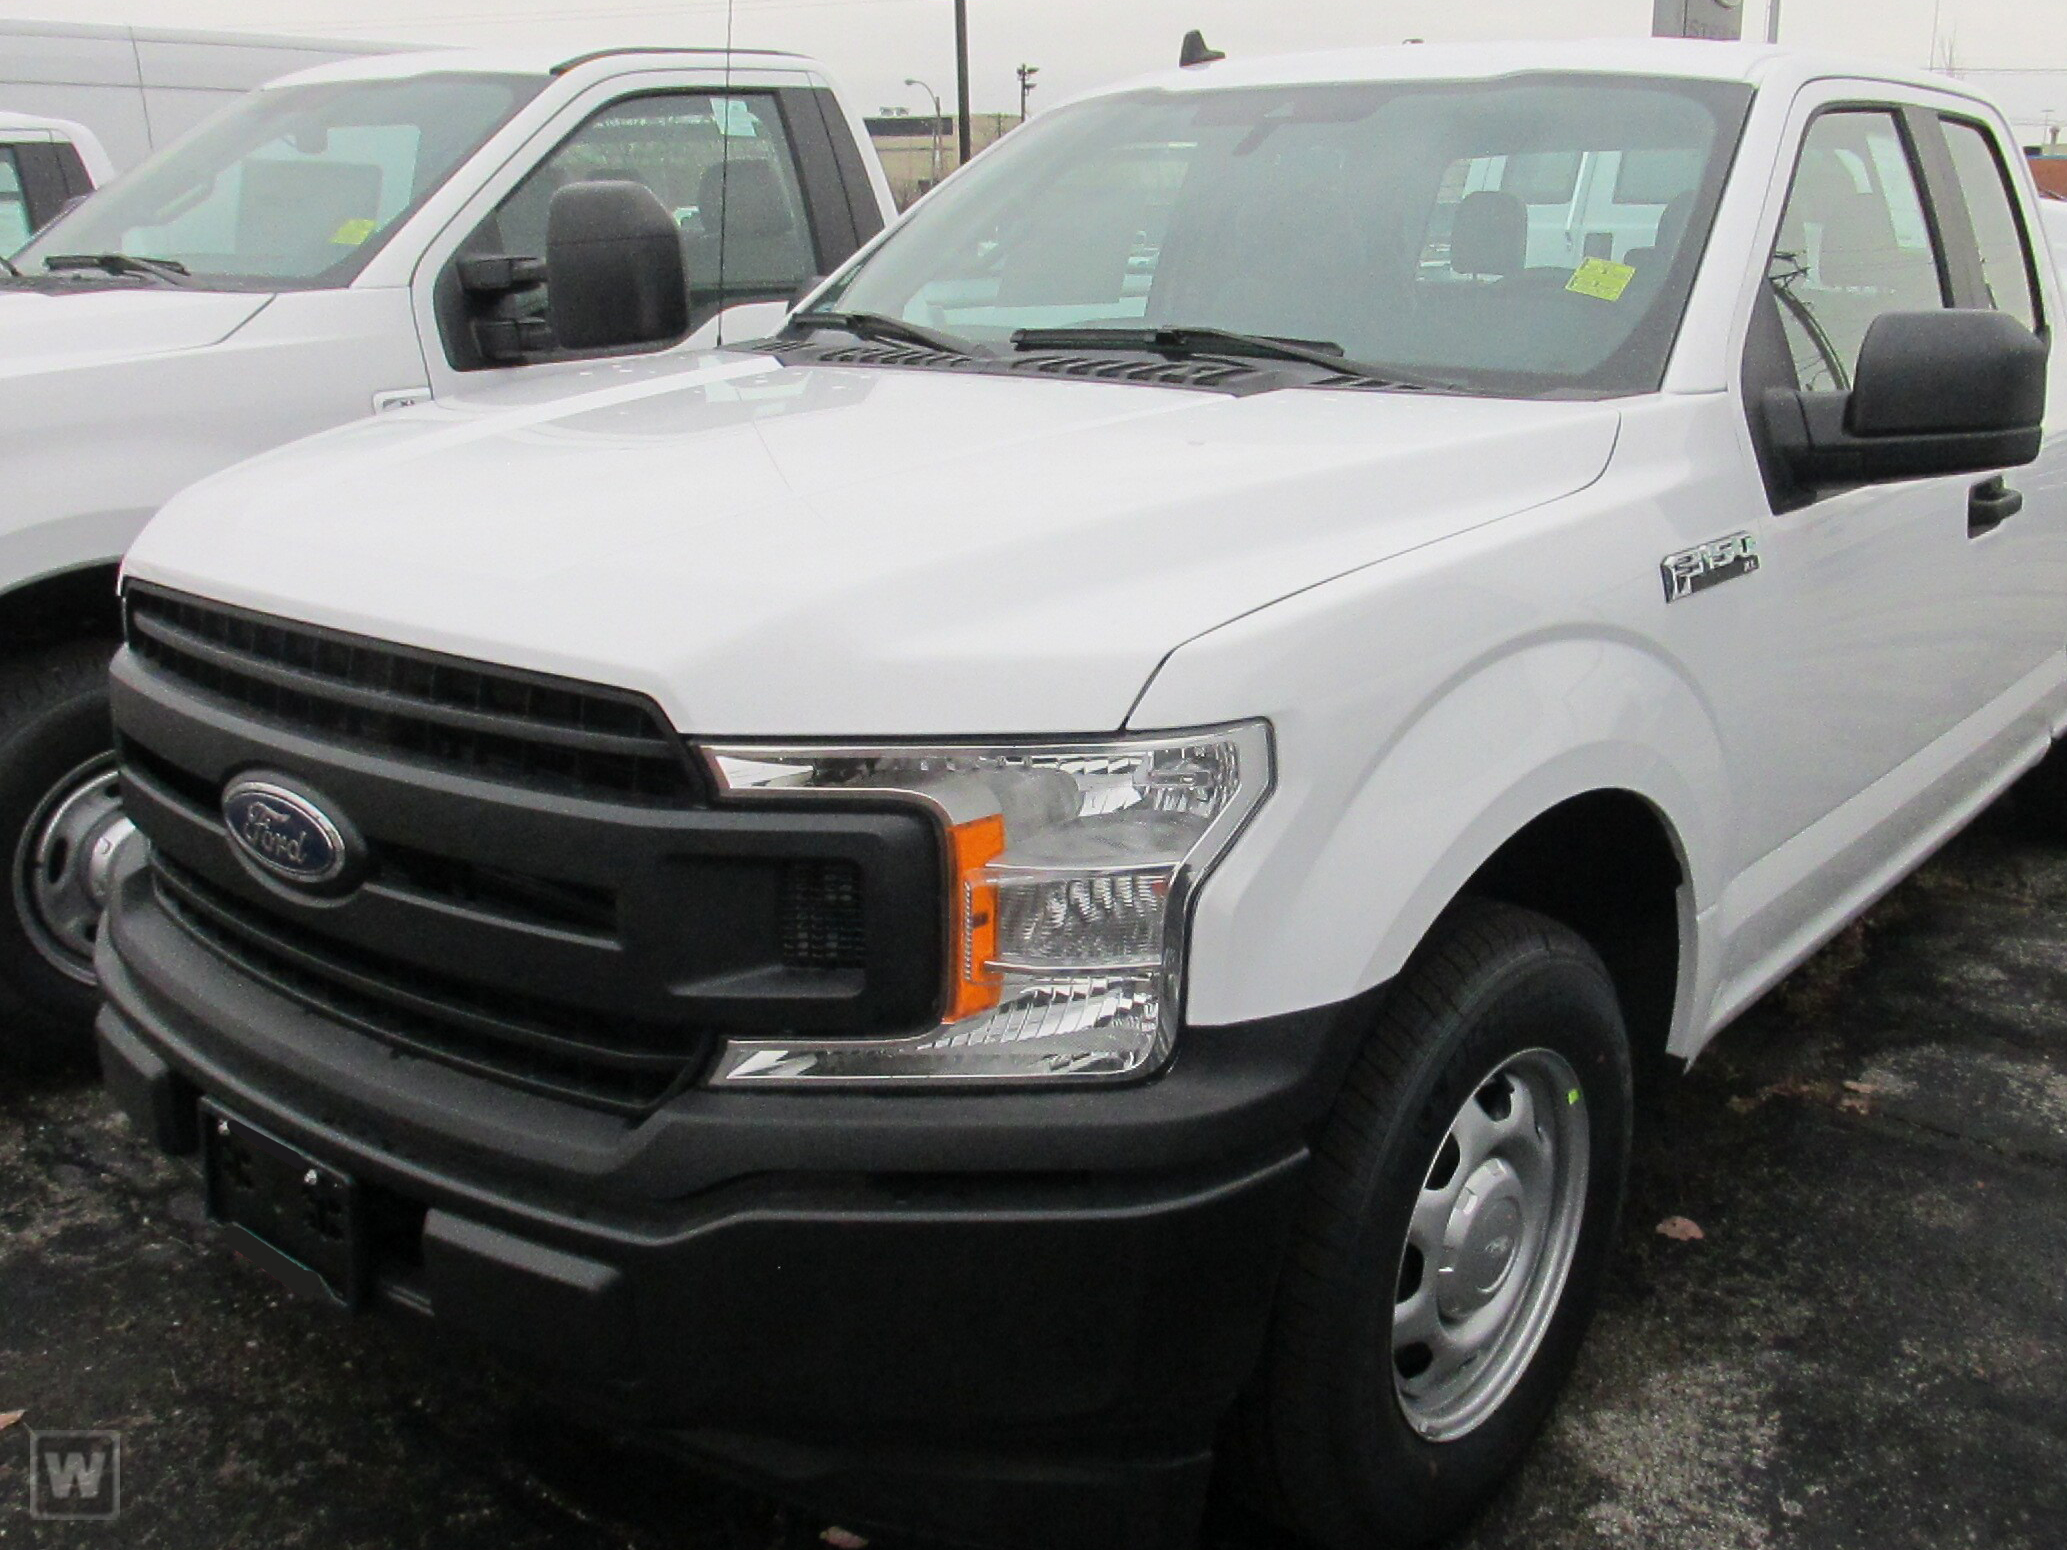 2020 F-150 Super Cab 4x4, Pickup #FT10380 - photo 1